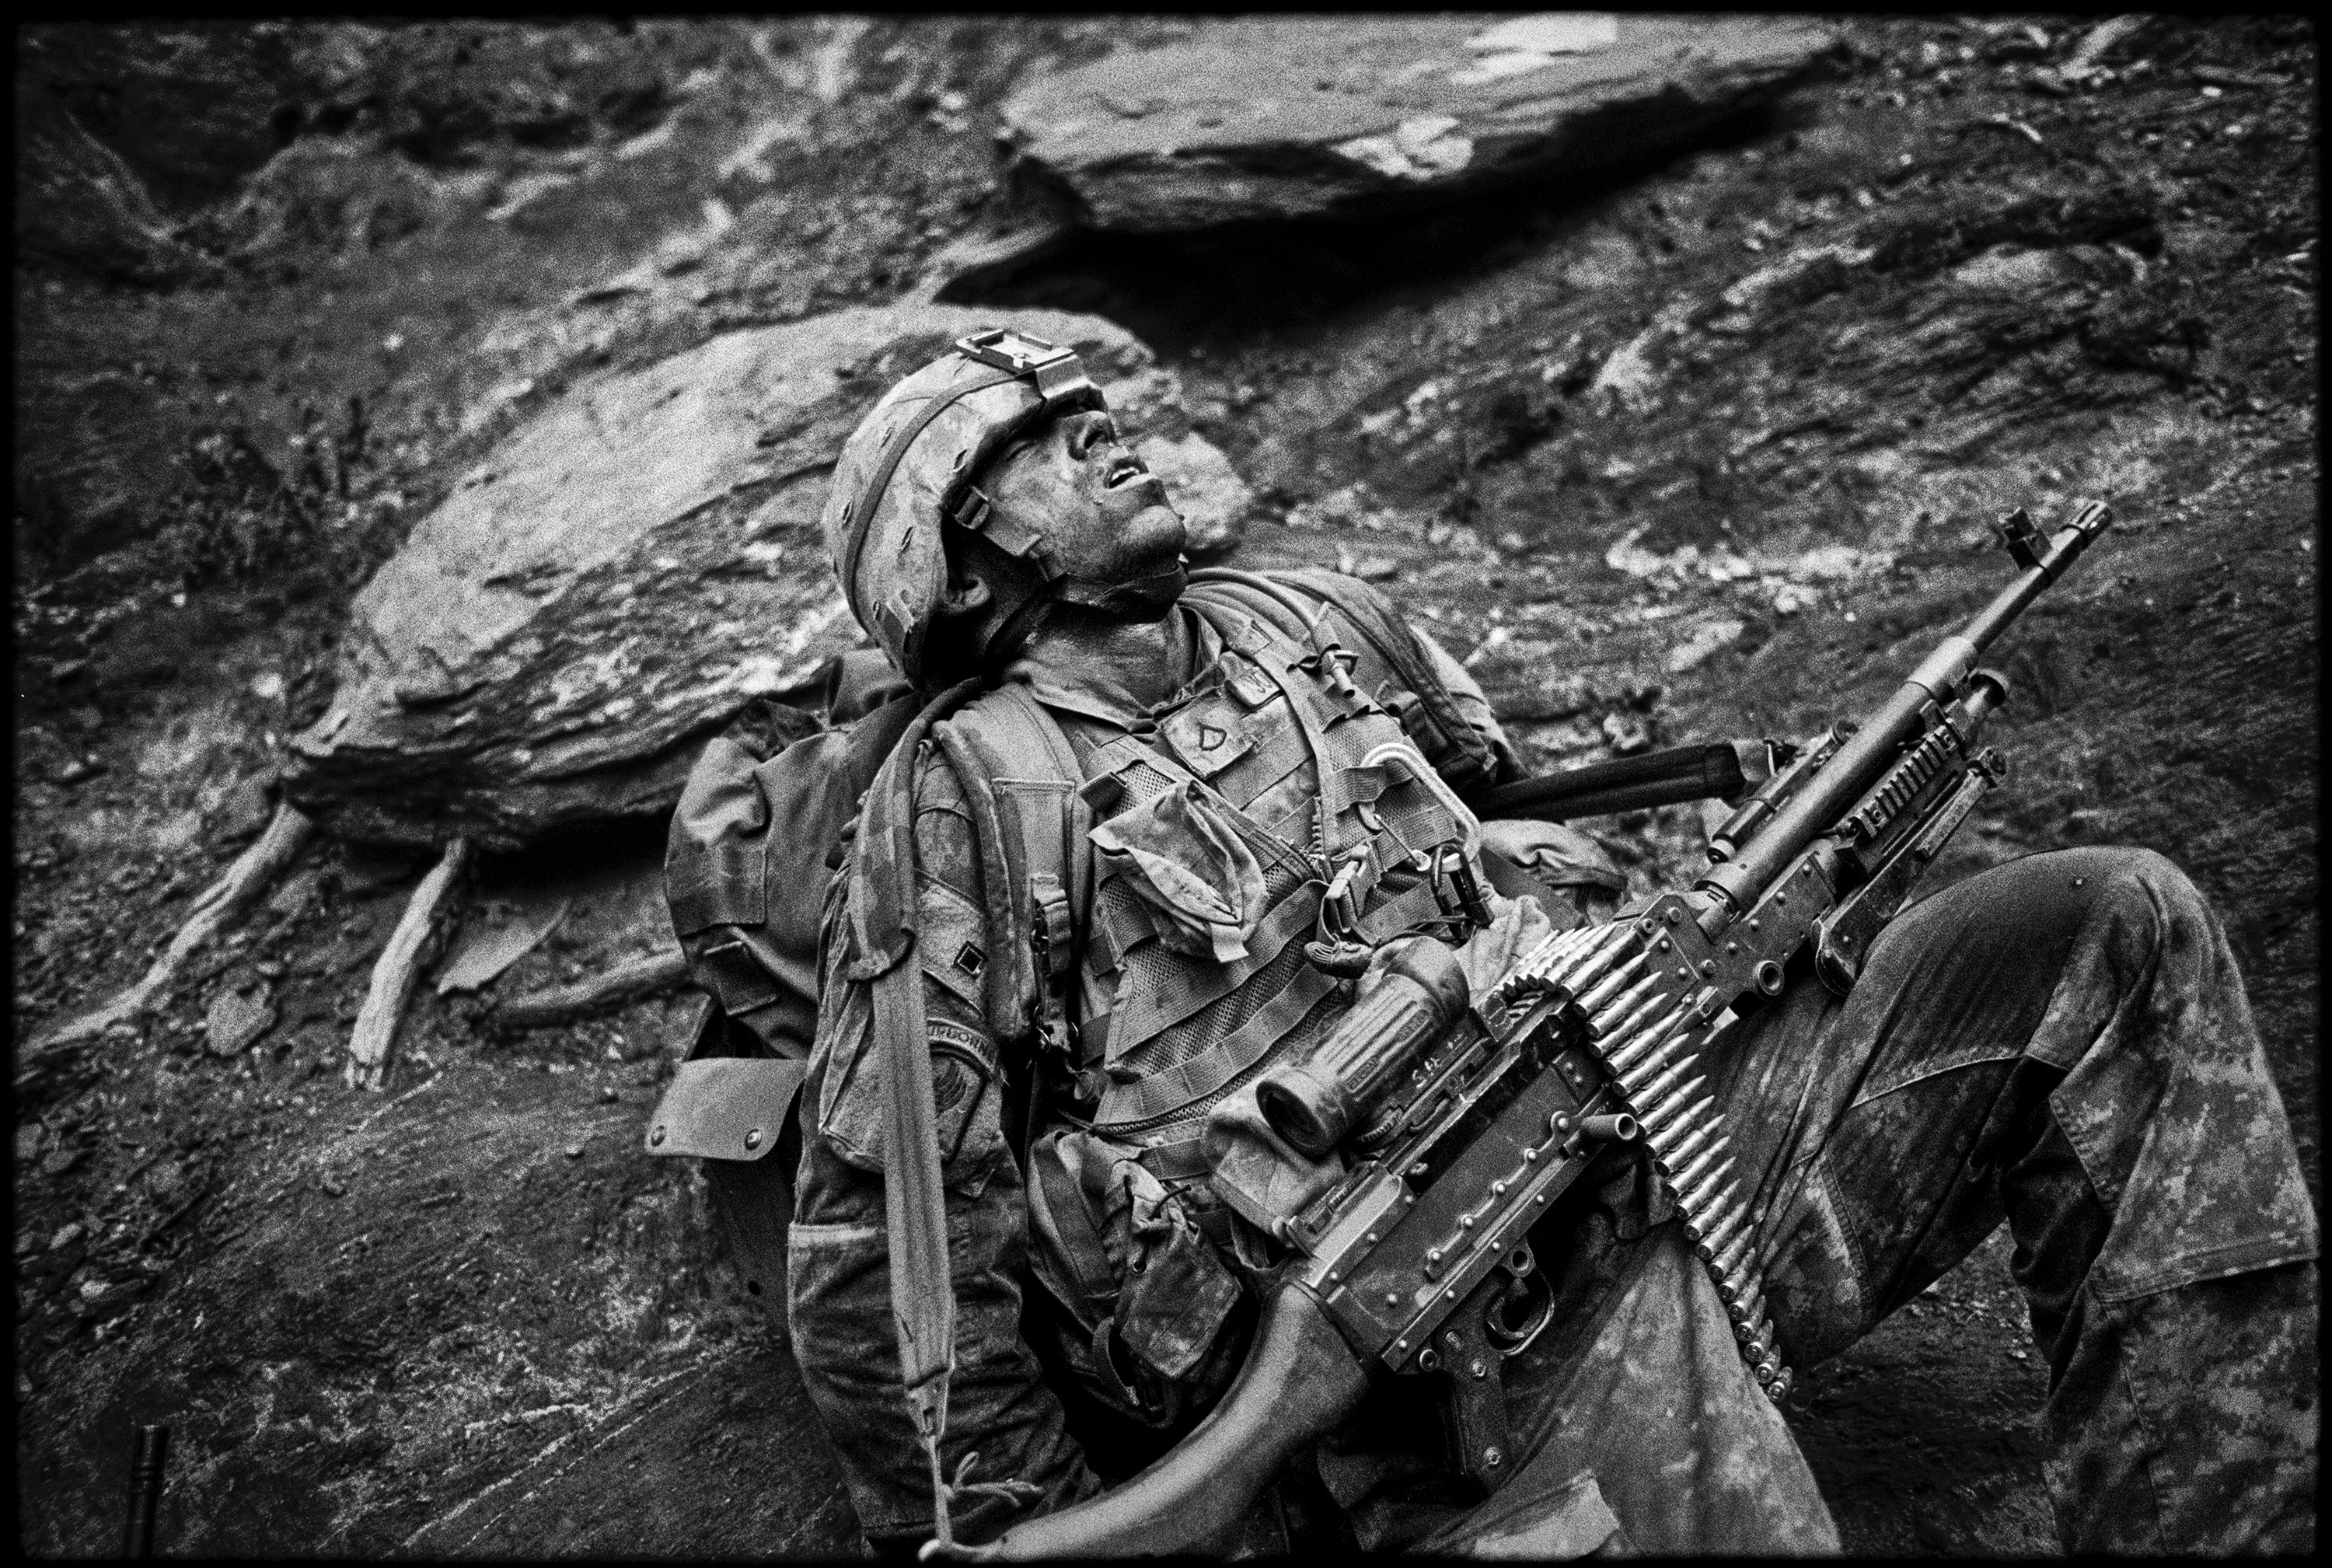 Sterling Jones.                       Balazs Gardi, Oct. 25, 2007. Korengal Valley, Afghanistan.                                                Minutes before the ambush men from Battle Company's Second Platoon stood surrounded by tall pine trees on top of the Abas-Ghar ridge listening to Specialist Sterling Jones spill a seemingly endless train of jokes, a performance that would put most professional comedians to shame. This was the third time I visited the notorious Korengal Valley, arguably the most dangerous battlefield in the Afghan war theatre at the time. This 6 miles long valley was just as crucial to smuggle in weapons and fighters from neighboring Pakistan almost three decades ago to crush the Soviet army as it was in 2007 to fight the occupying US forces. Seconds after the firefight broke out I saw Jones standing behind a giant tree trunk unleashing a shower of lead towards the invisible enemy. While we were pinned down the insurgents overran the nearby position of the scouts unit killing Staff Sergeant Larry Rougle.At the time I took this photo of Jones towards the end of the operation I did not know that same night his Company would lose two more soldiers, Sergeant Josh Brennan and Specialist Hugo Mendoza, nor that the US Army would abandon its posts in the Korengal Valley only a few years later.                                              When I look at this image I not only see an exhausted paratrooper but the faces of the comrades he lost, the bodies of dead villagers and the wounded women and children he saw. The photo of Jones makes me think of the true achievements and the real cost of war.